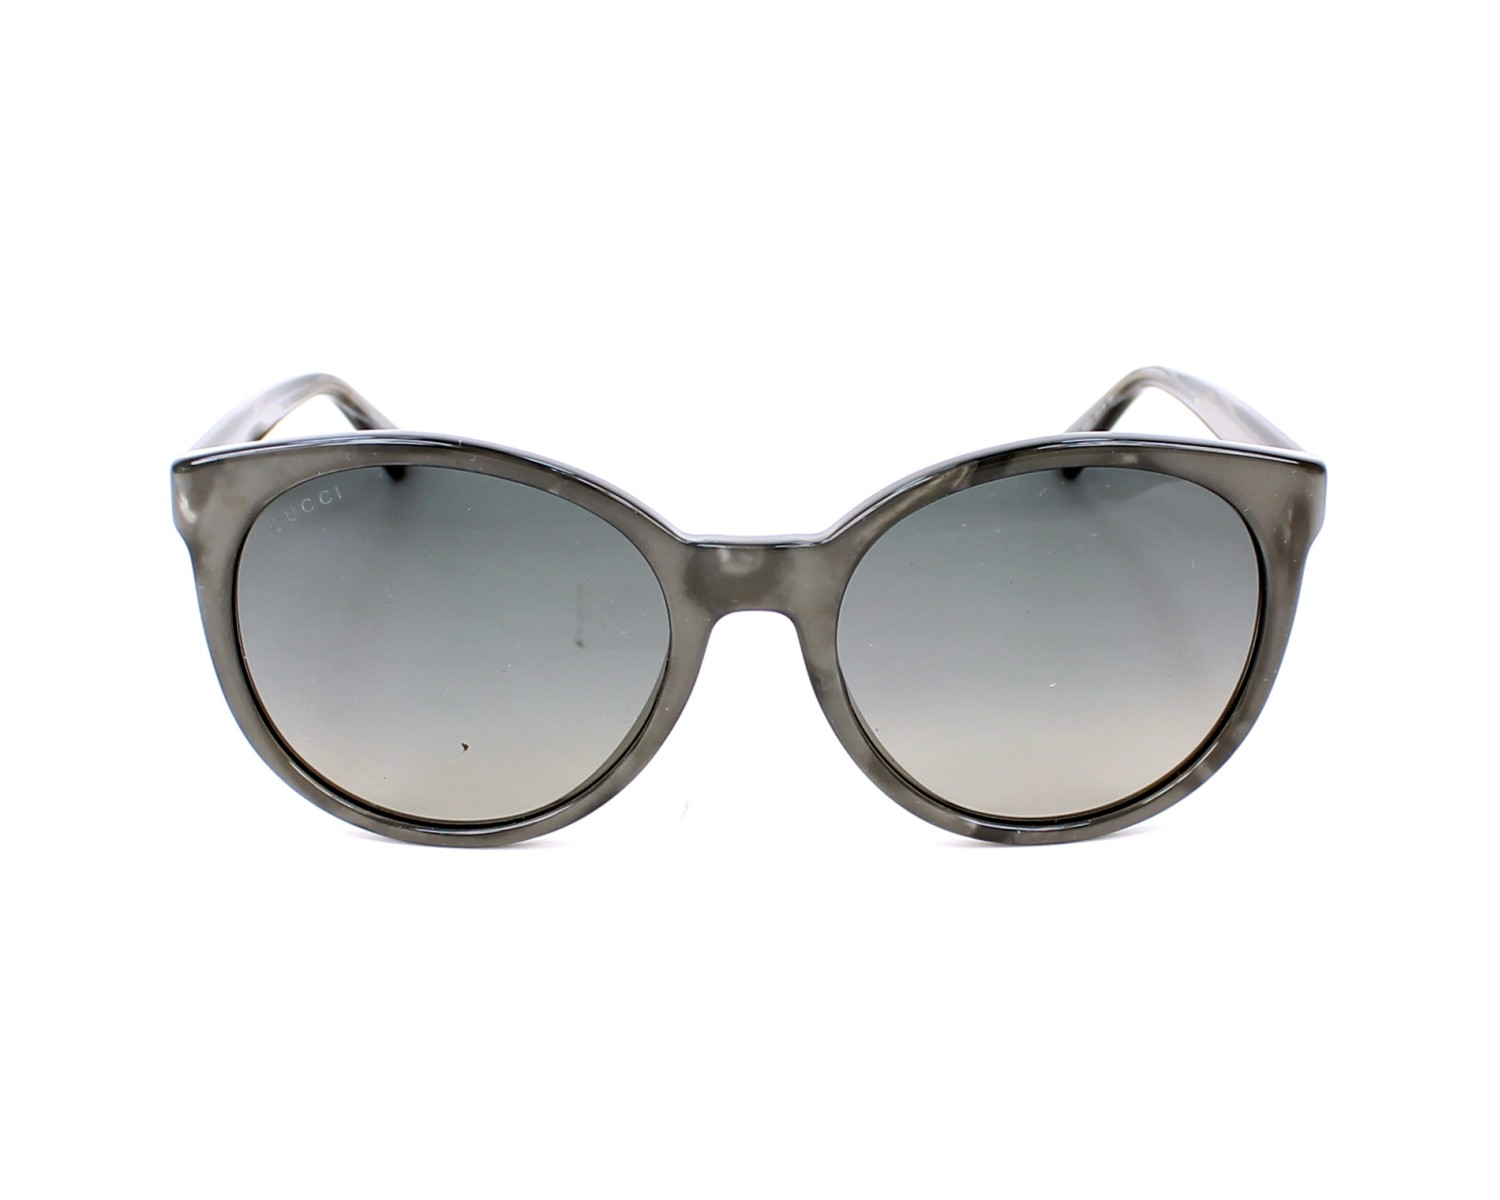 fc90298056e6 Sunglasses Gucci GG-3820-S R4I DX 54-19 Grey front view